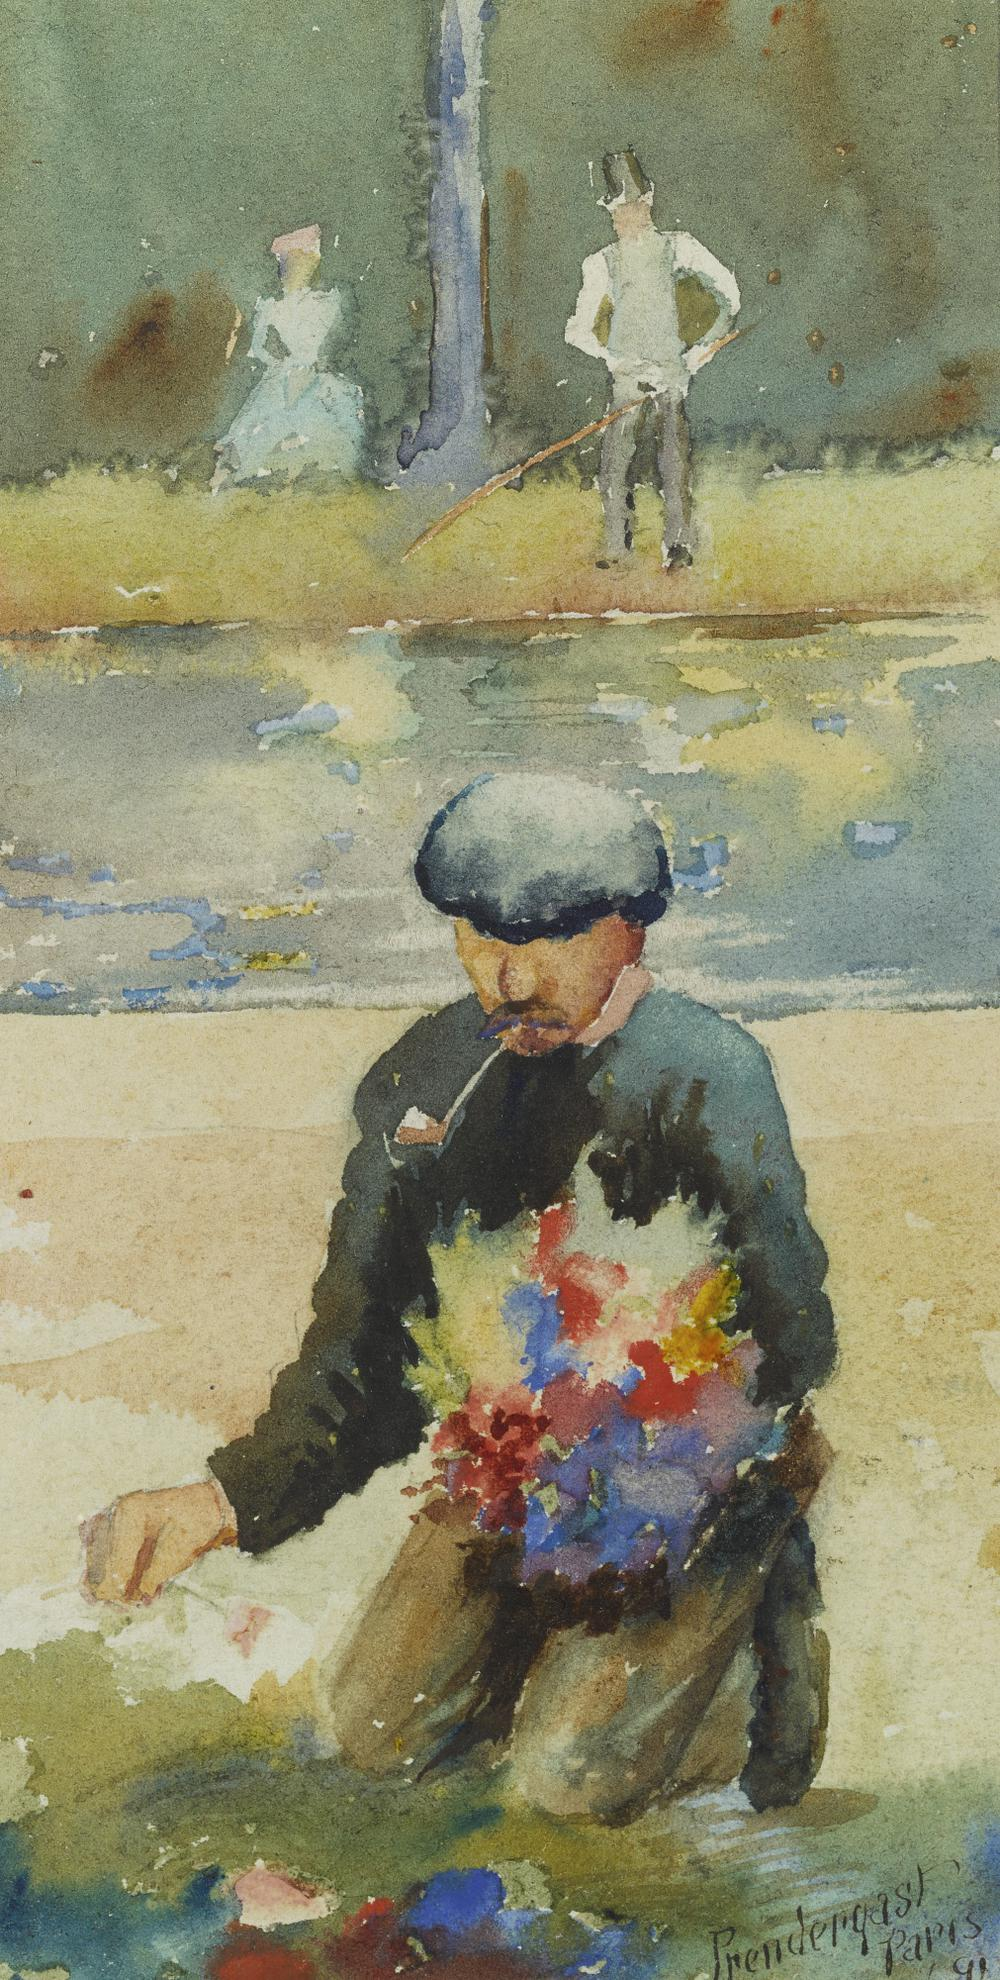 Maurice Brazil Prendergast-Unknown Title (Kneeling Man)-1891